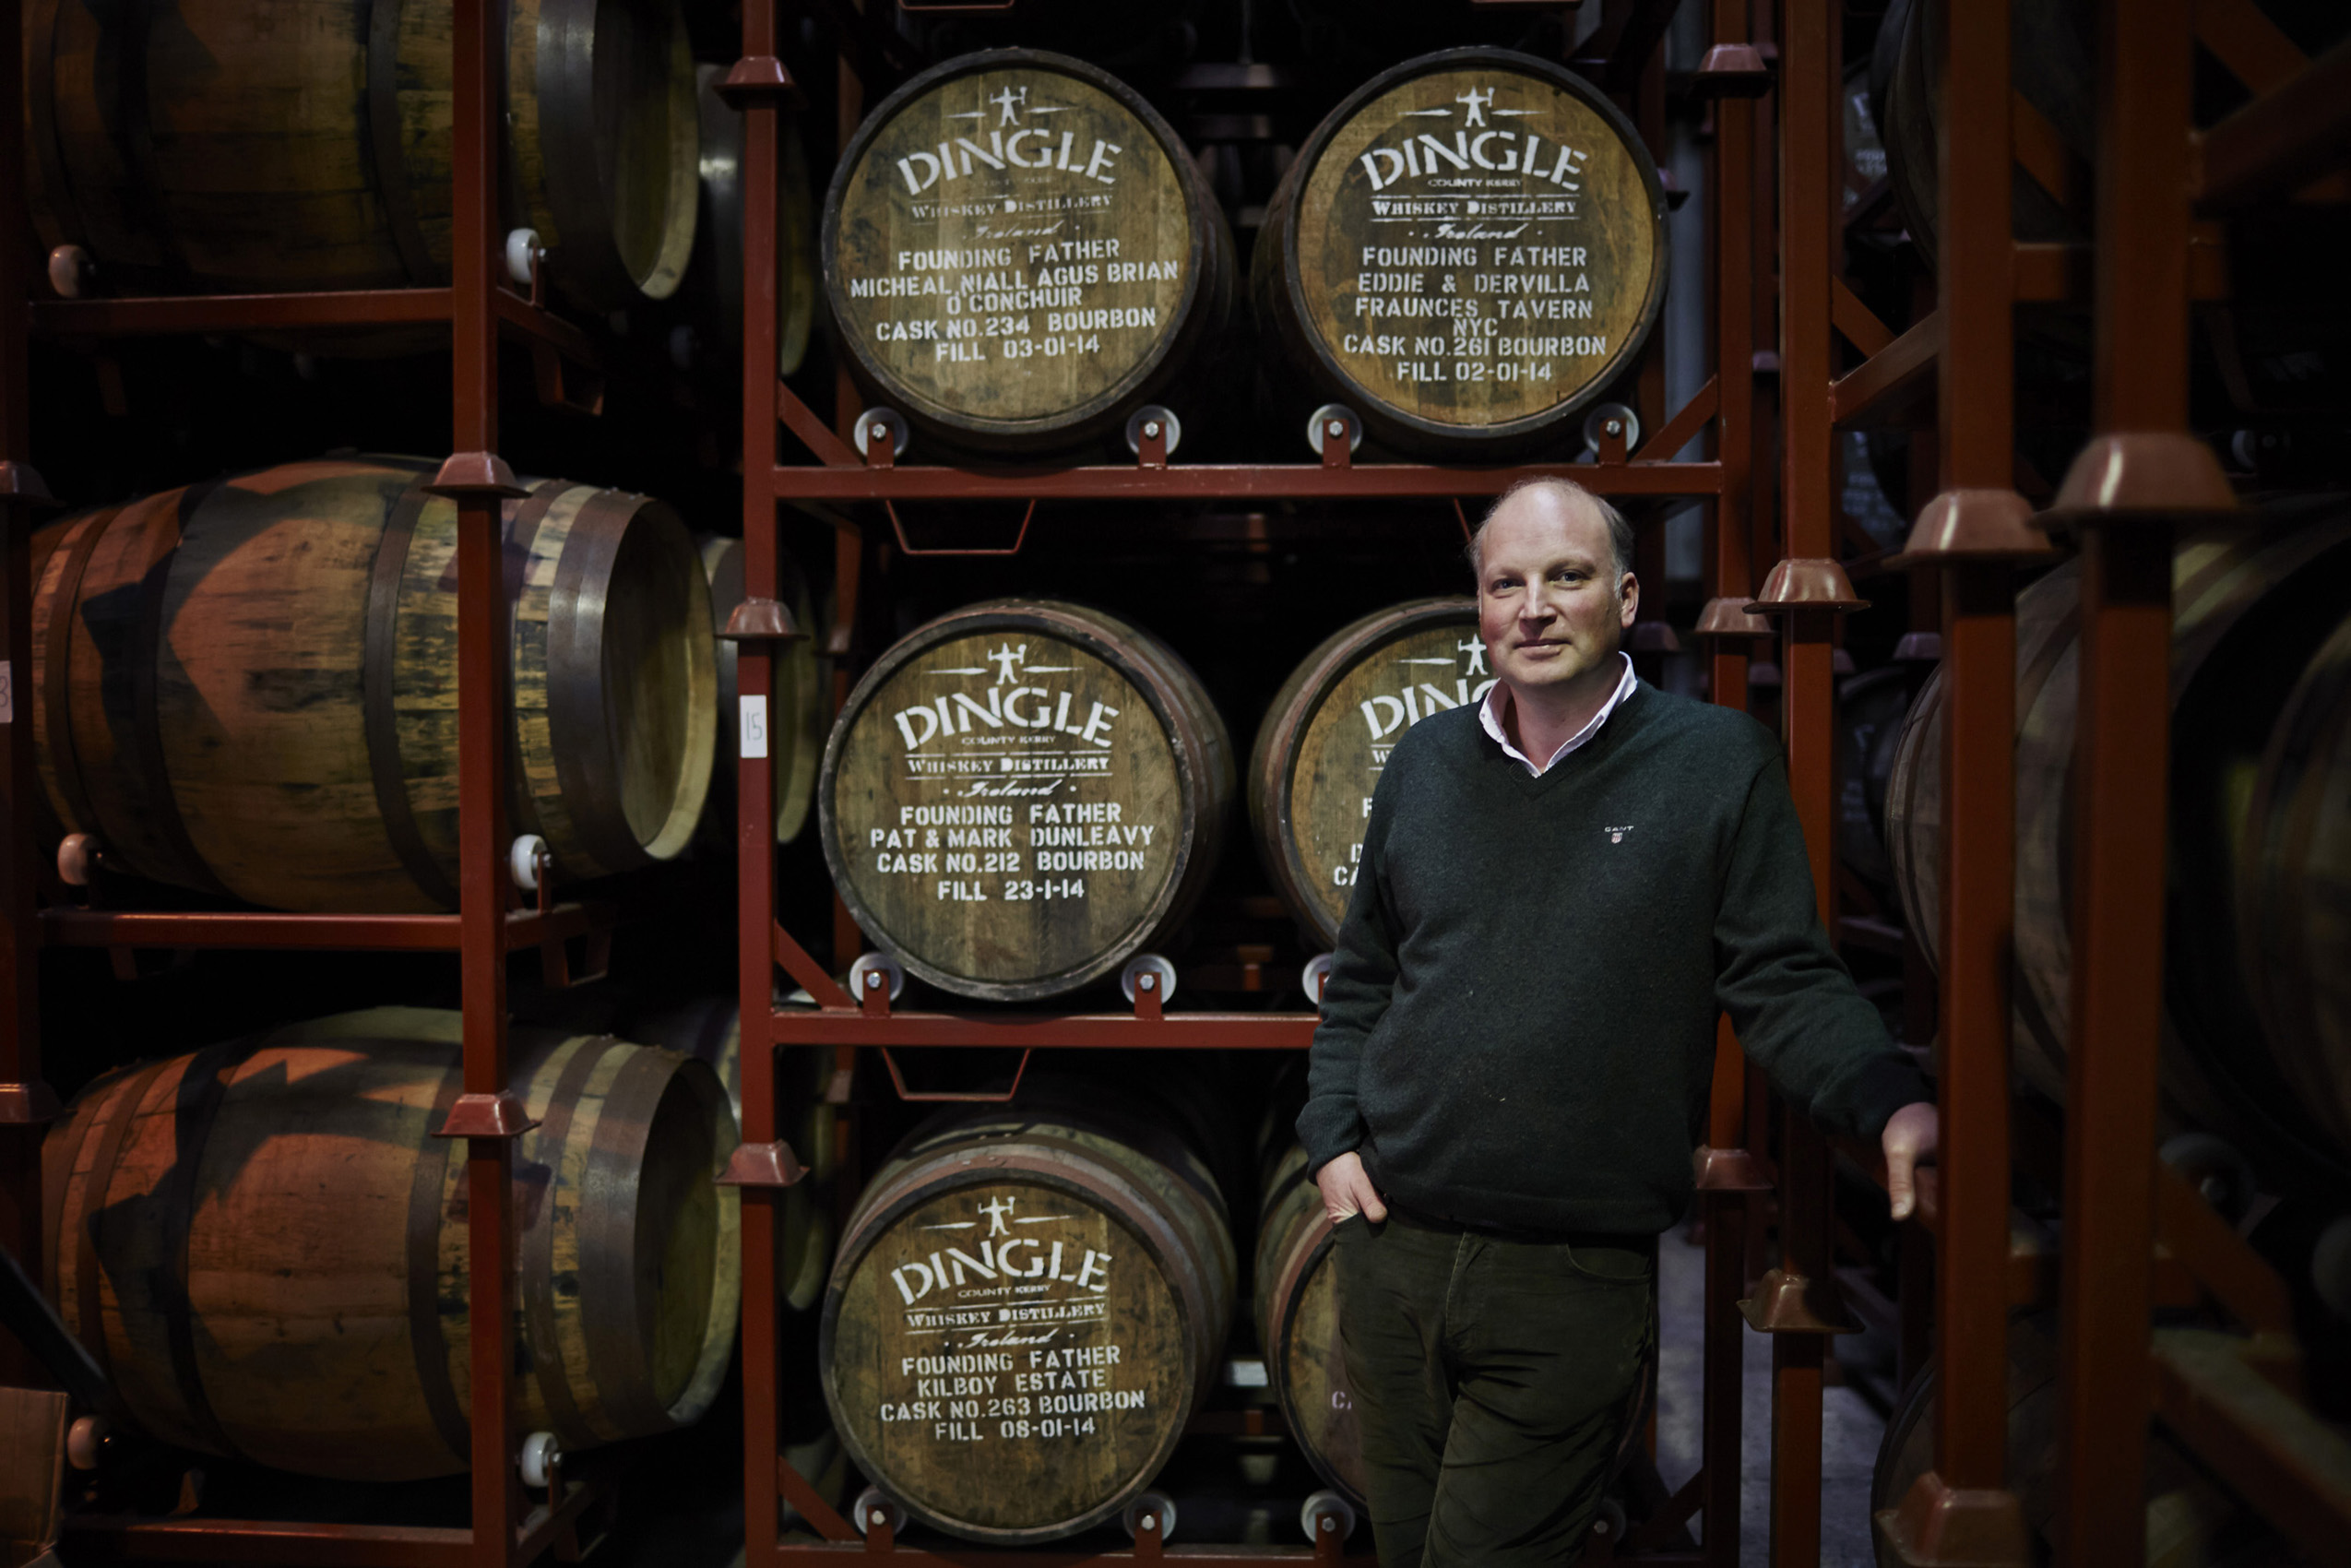 SteveRyan_Photographer_Drink_whisky_barrells_46